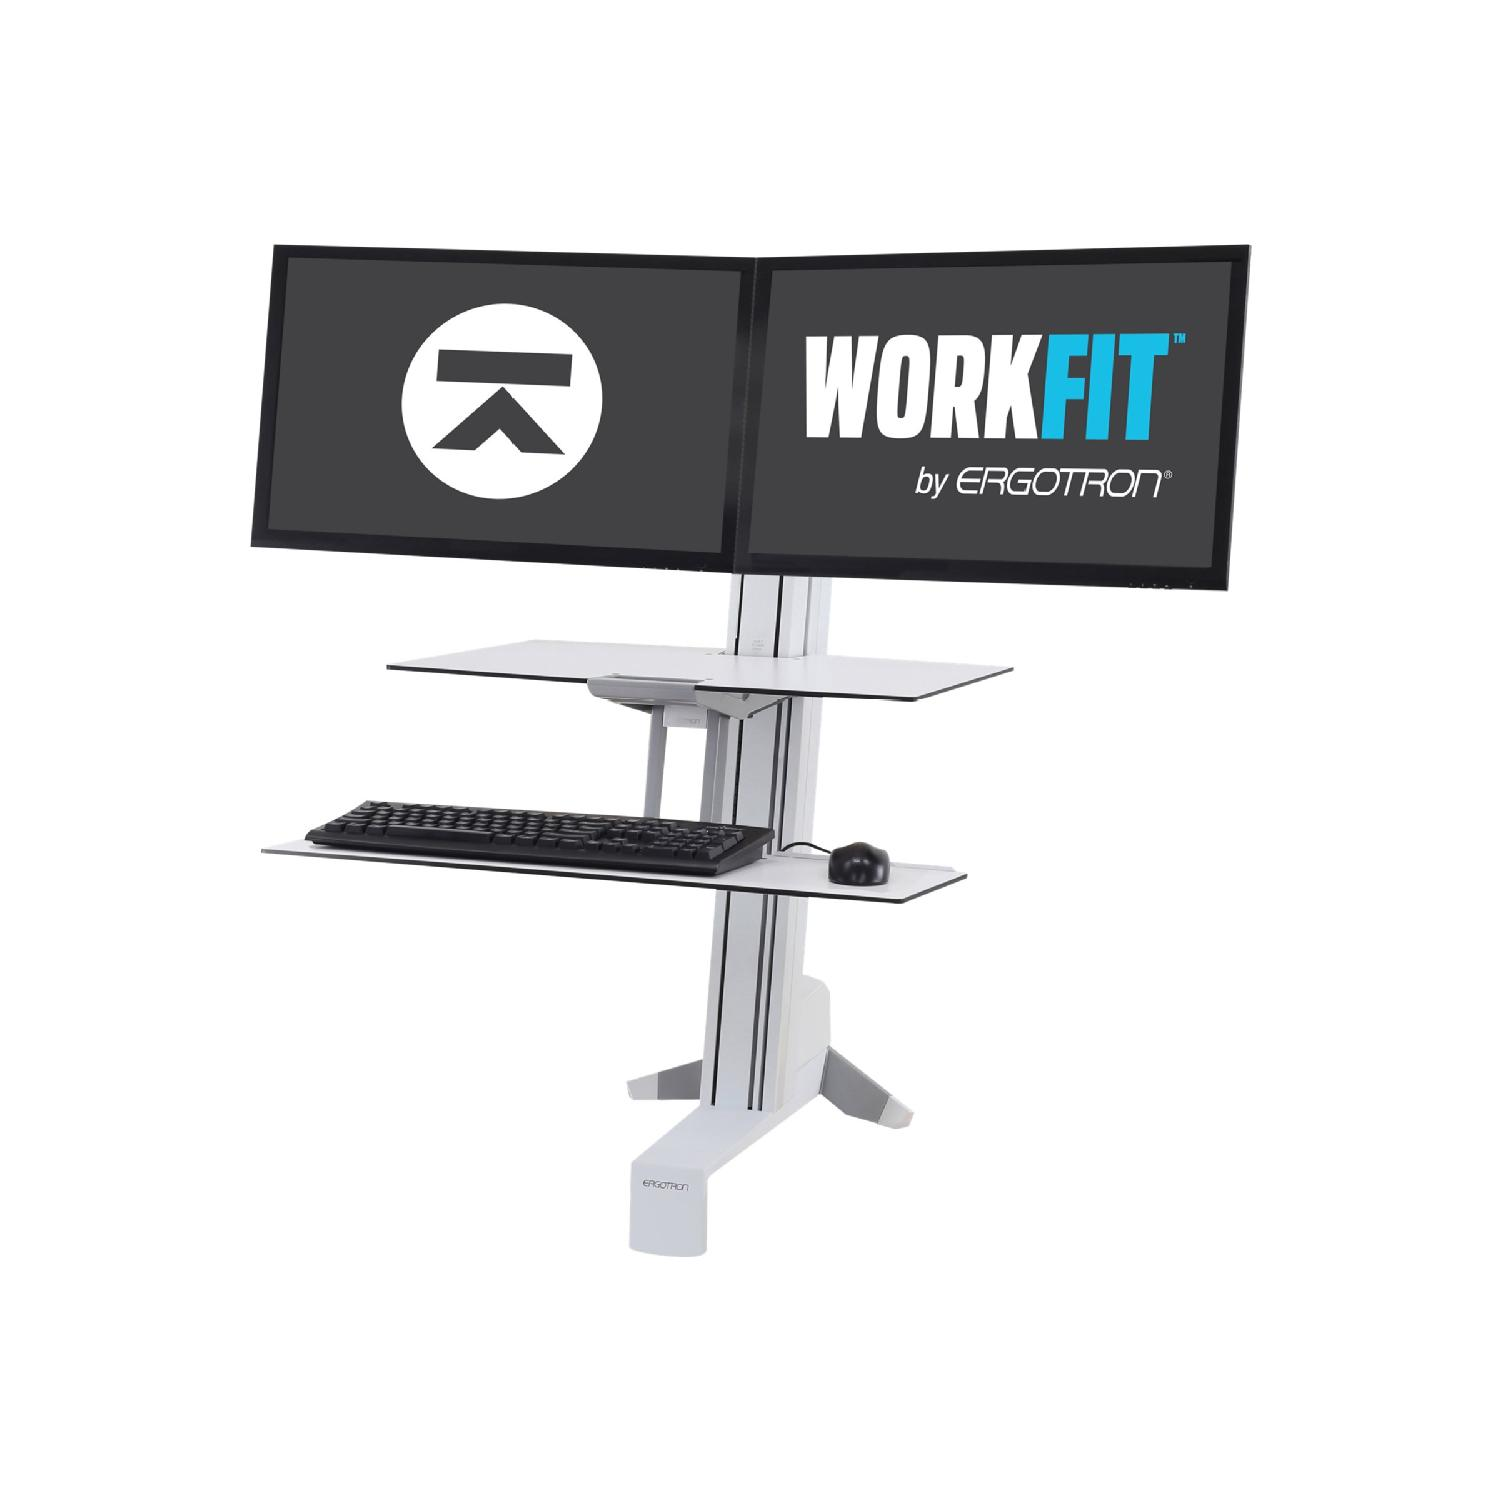 Ergotron Workfit S Dual Workstation With Worksurface